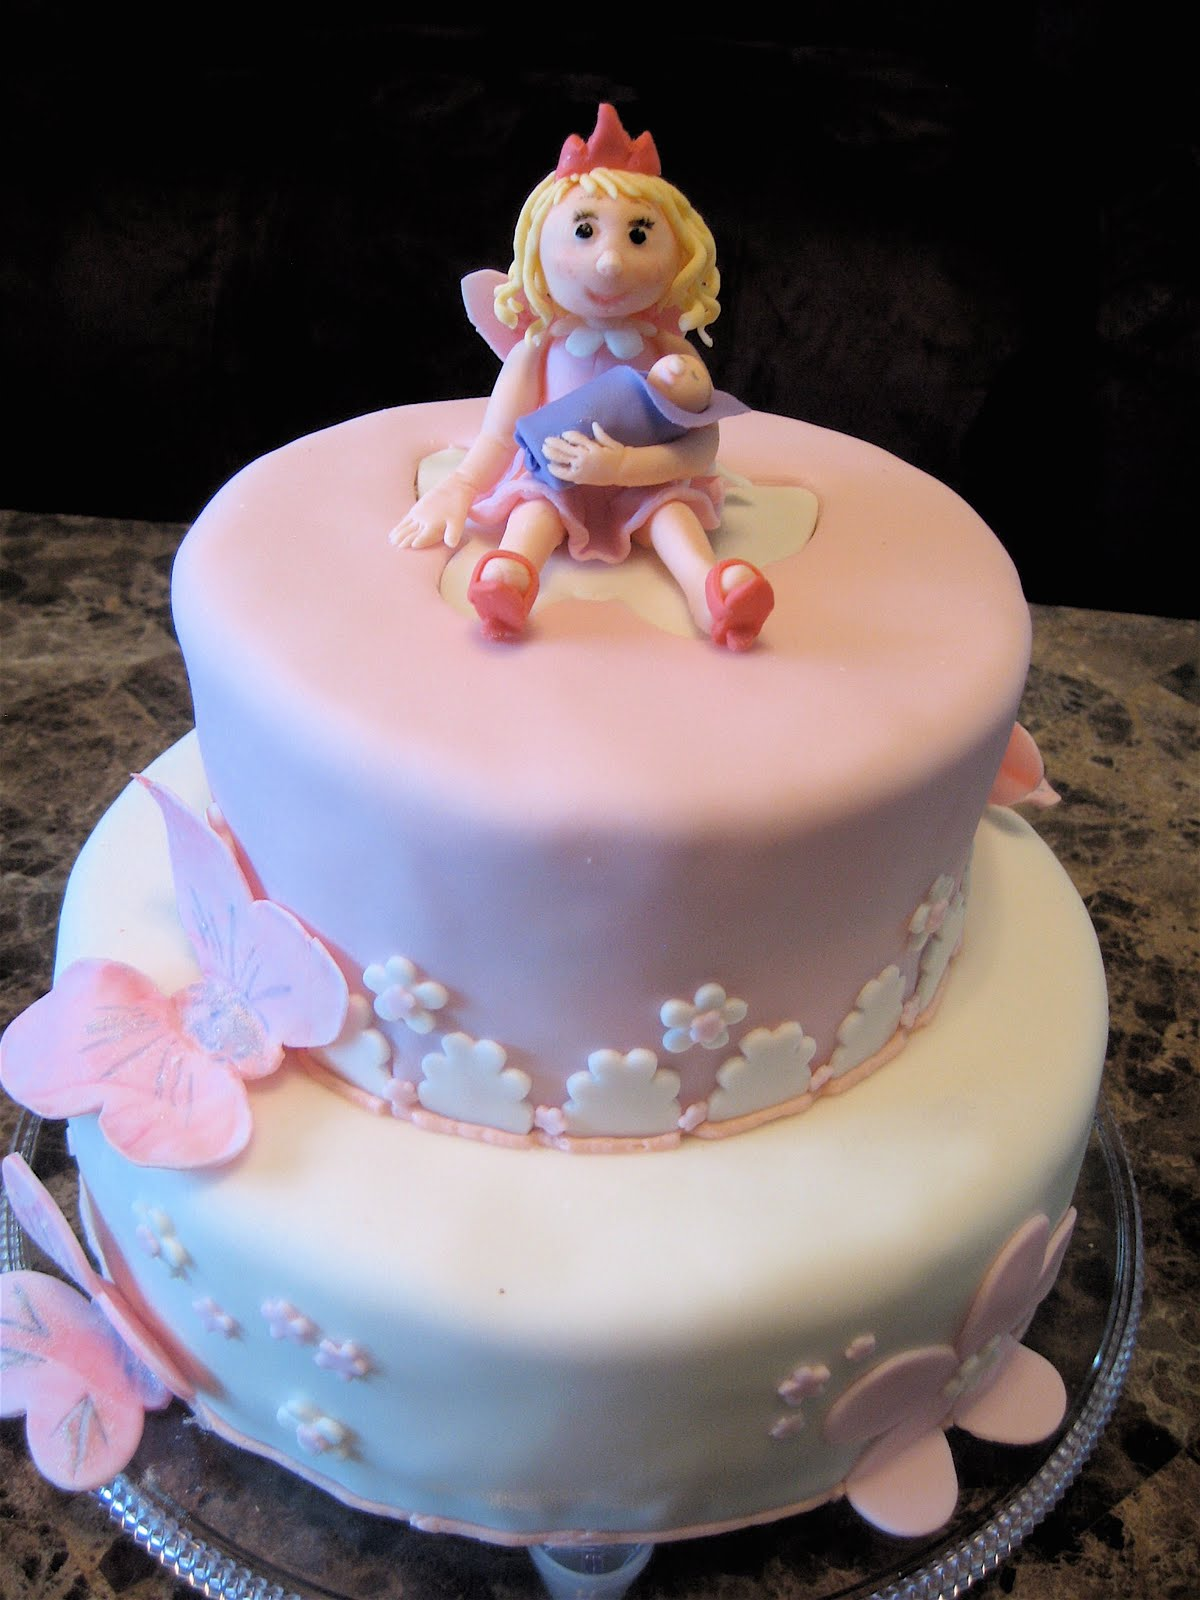 Baby Doll Cake Images : Linsey s Creative Cakes: Baby doll cake